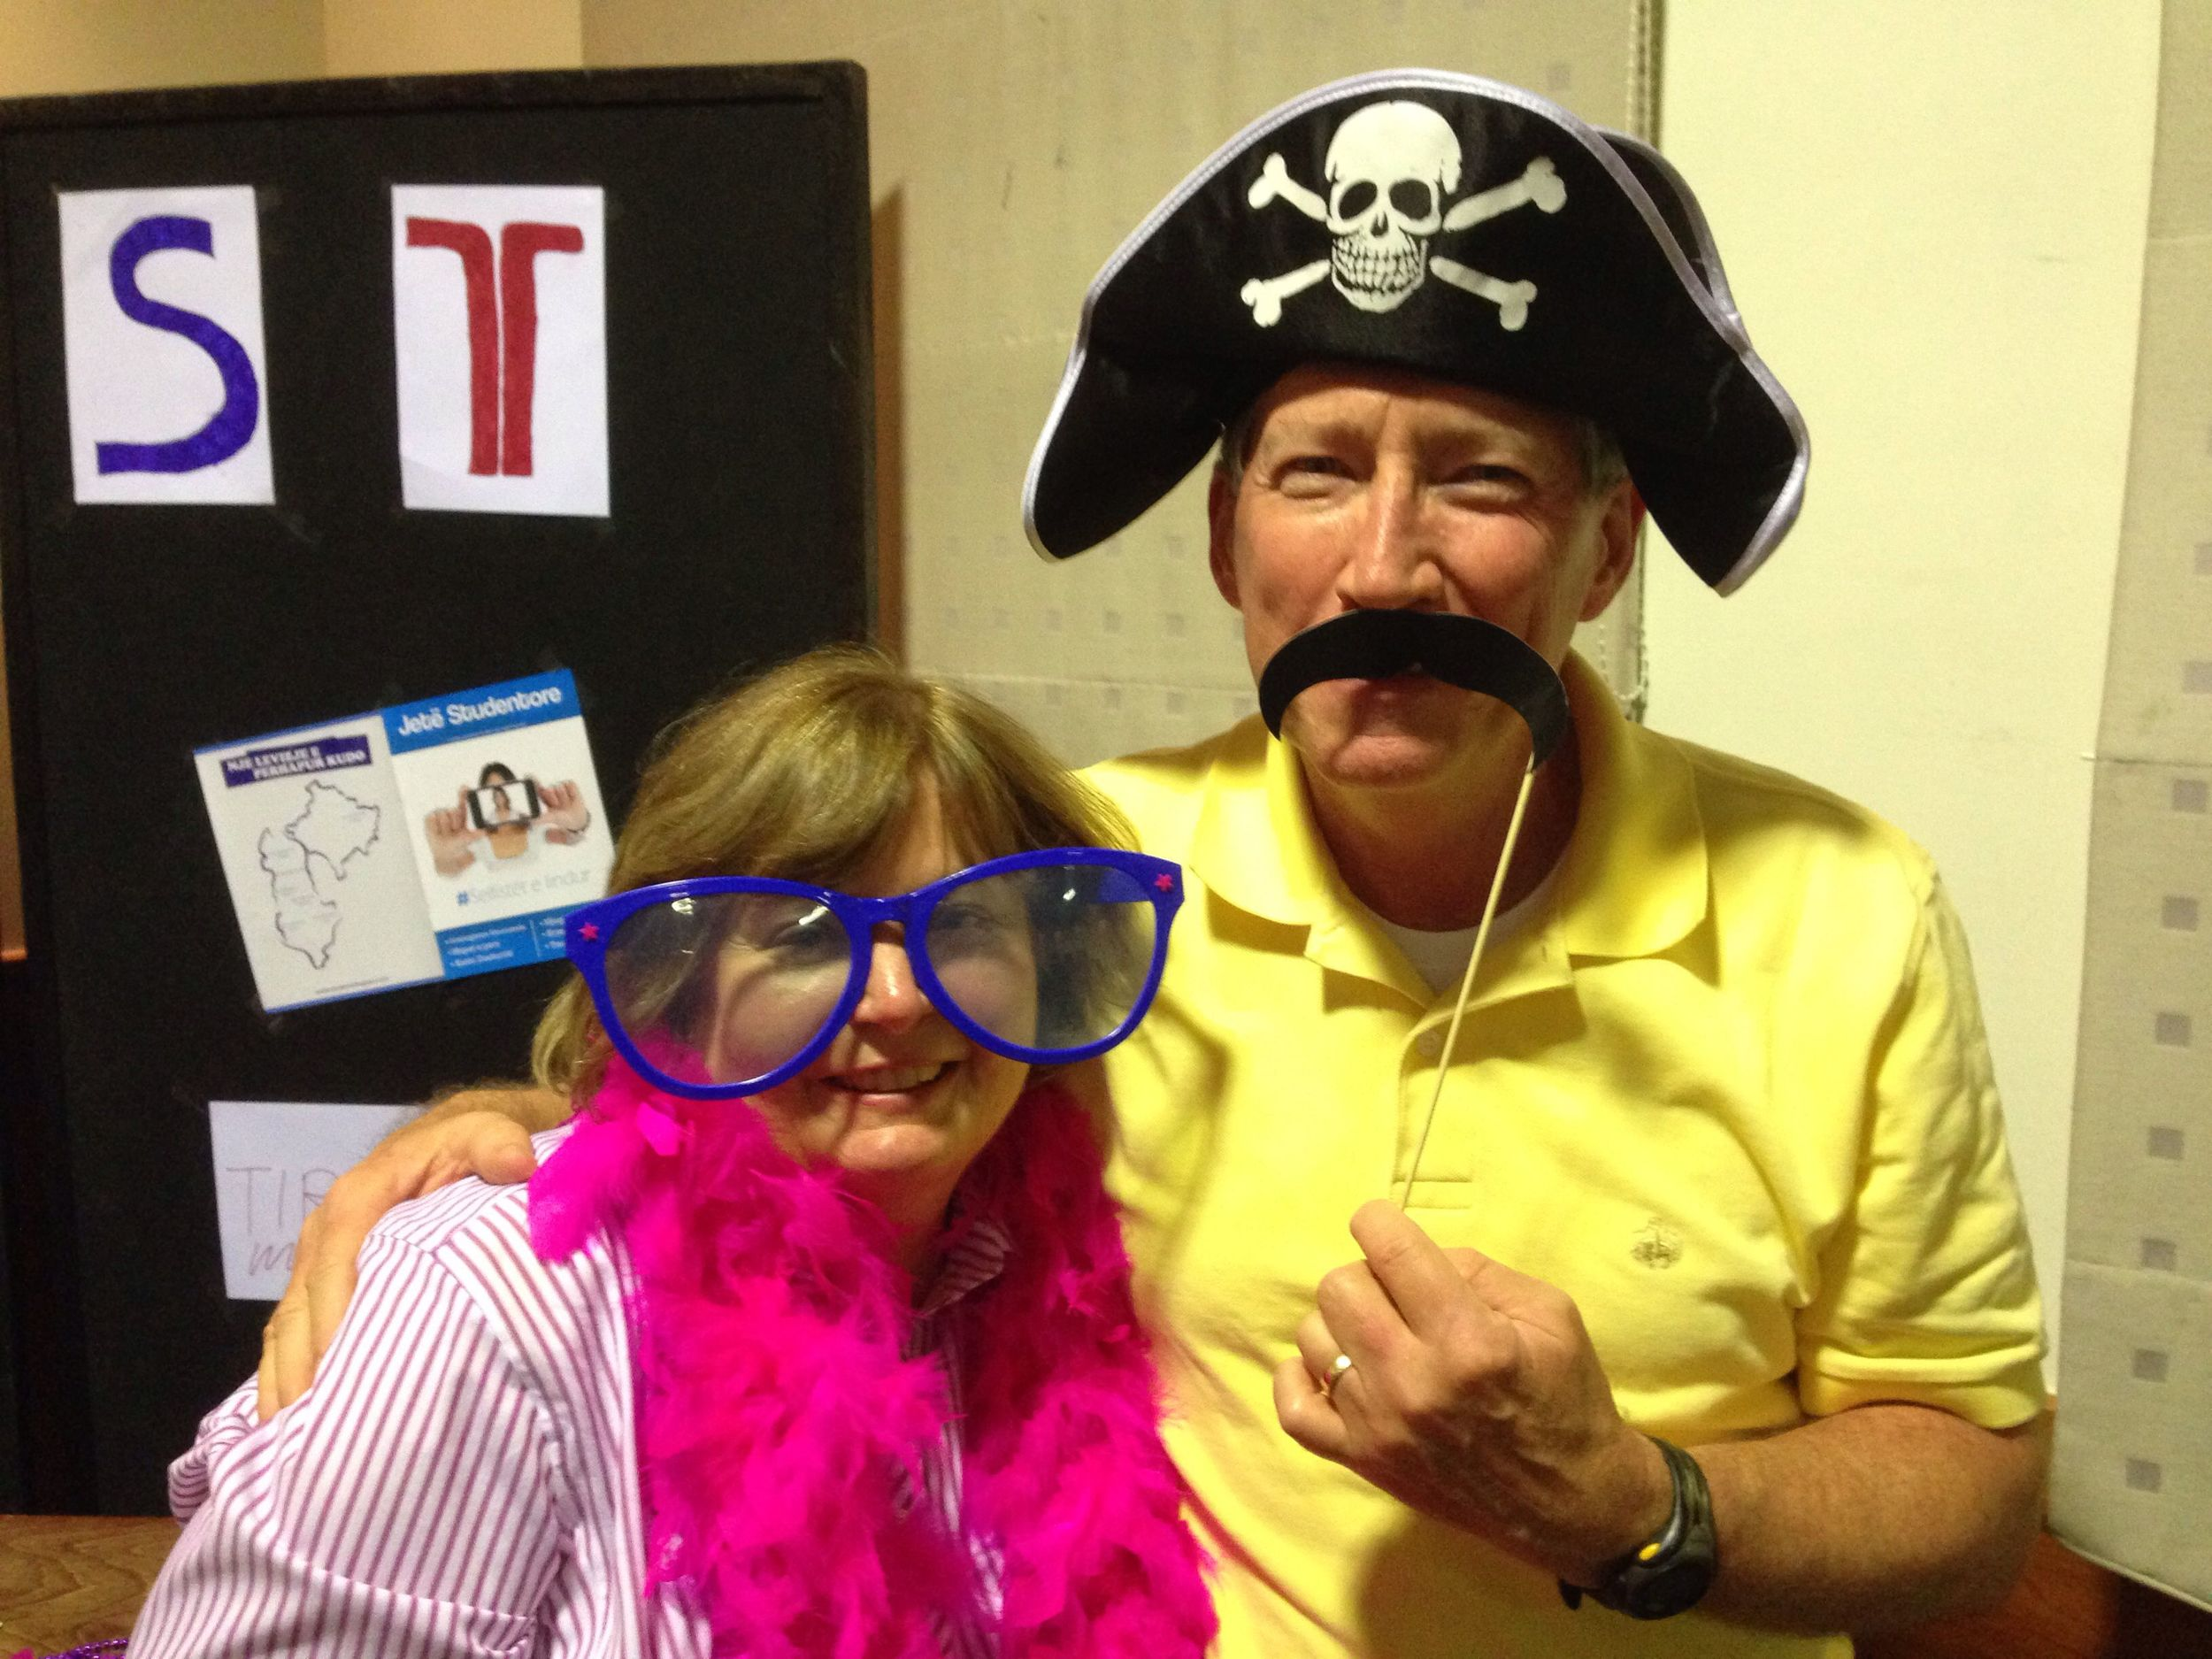 Even the team leaders had fun at the Photo Booth!